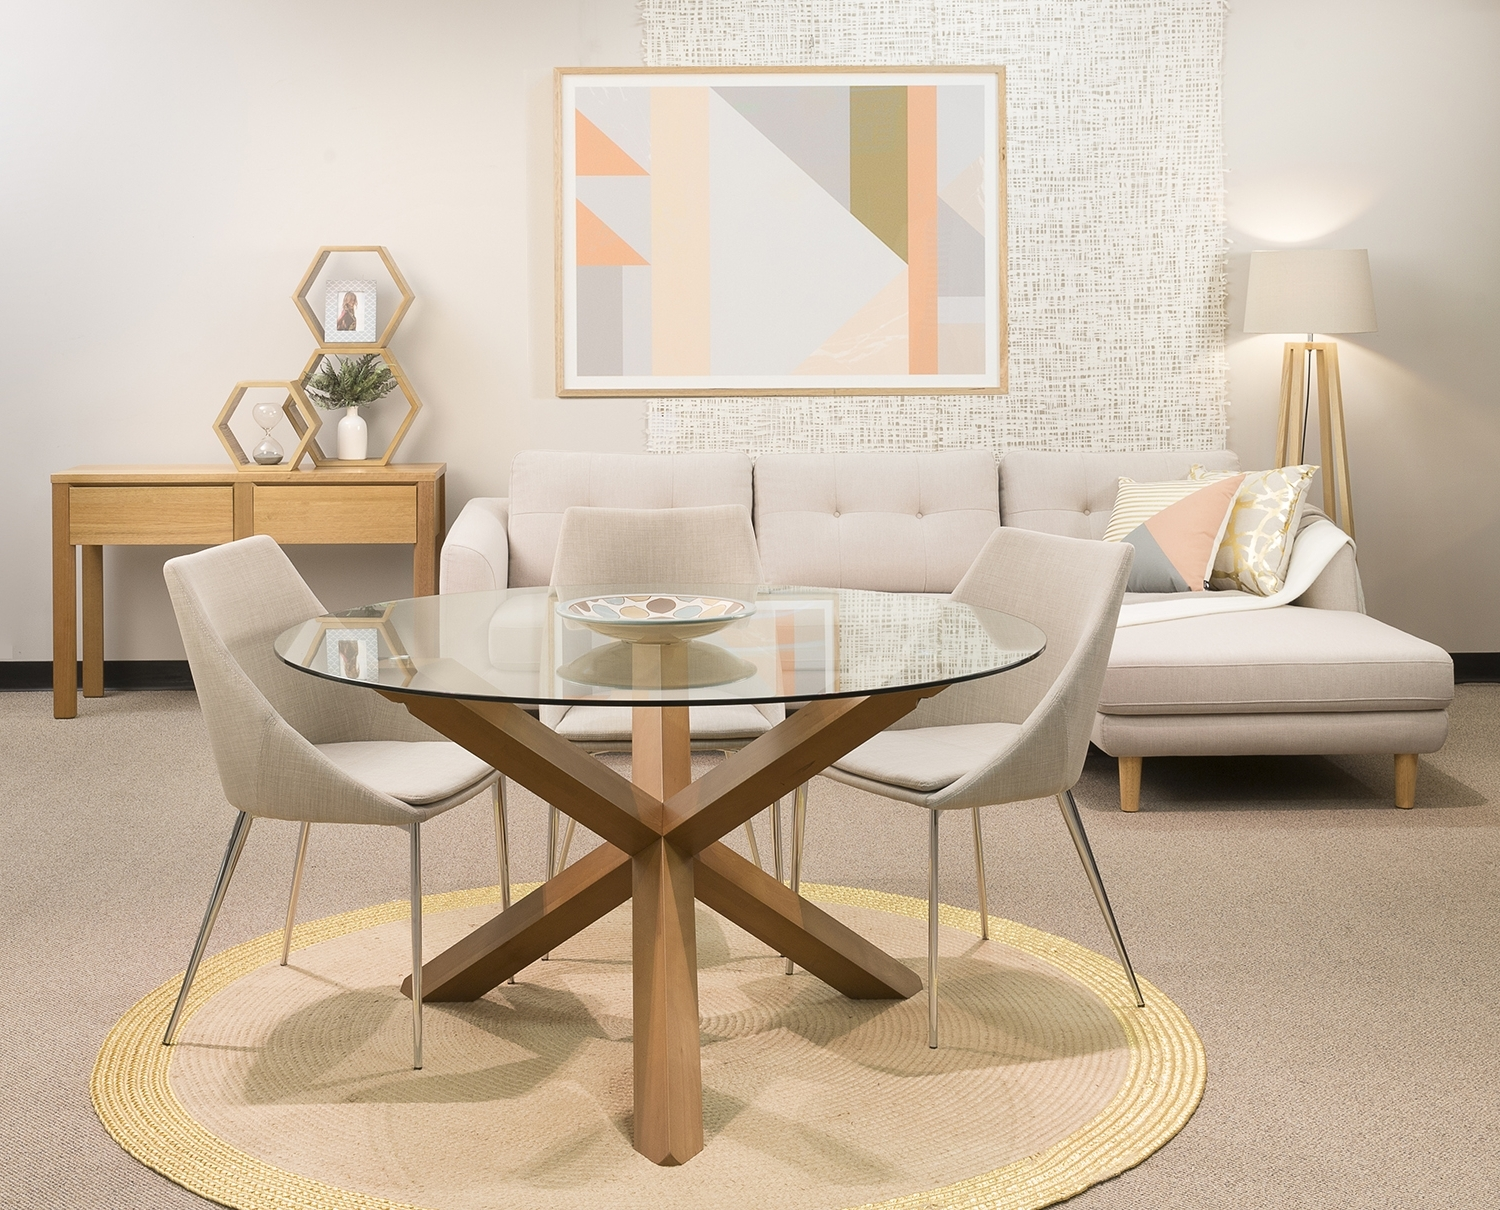 Dezign Furniture & Homewares Stores – Sydney Within Oak And Glass Dining Tables Sets (View 5 of 25)